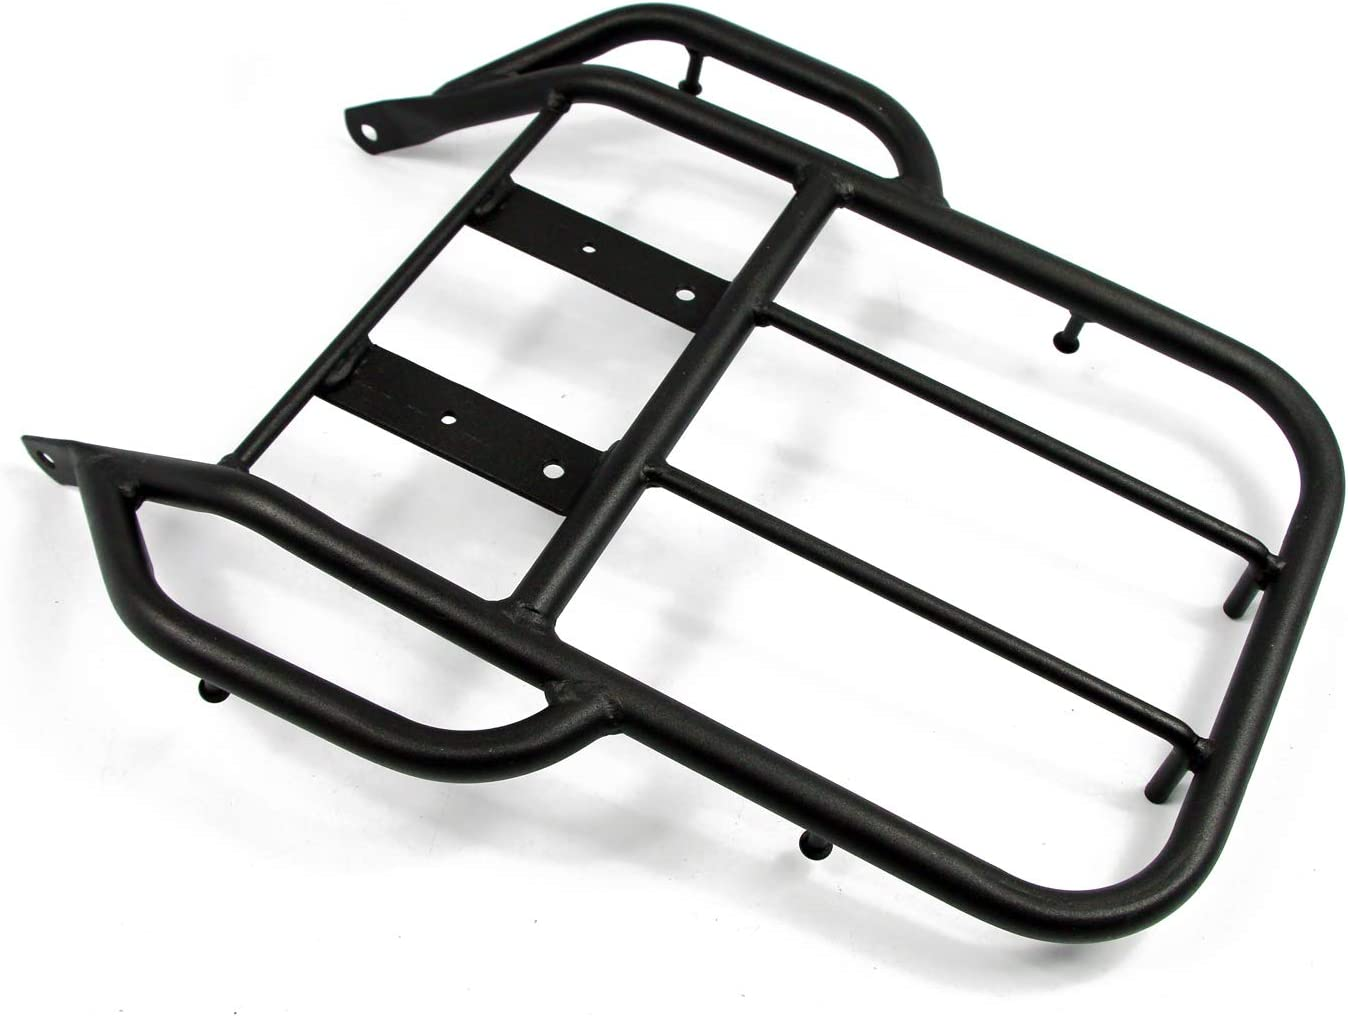 Parts COPART Motorcycle Rear Luggage Rack For Honda XR250 XR400 ...